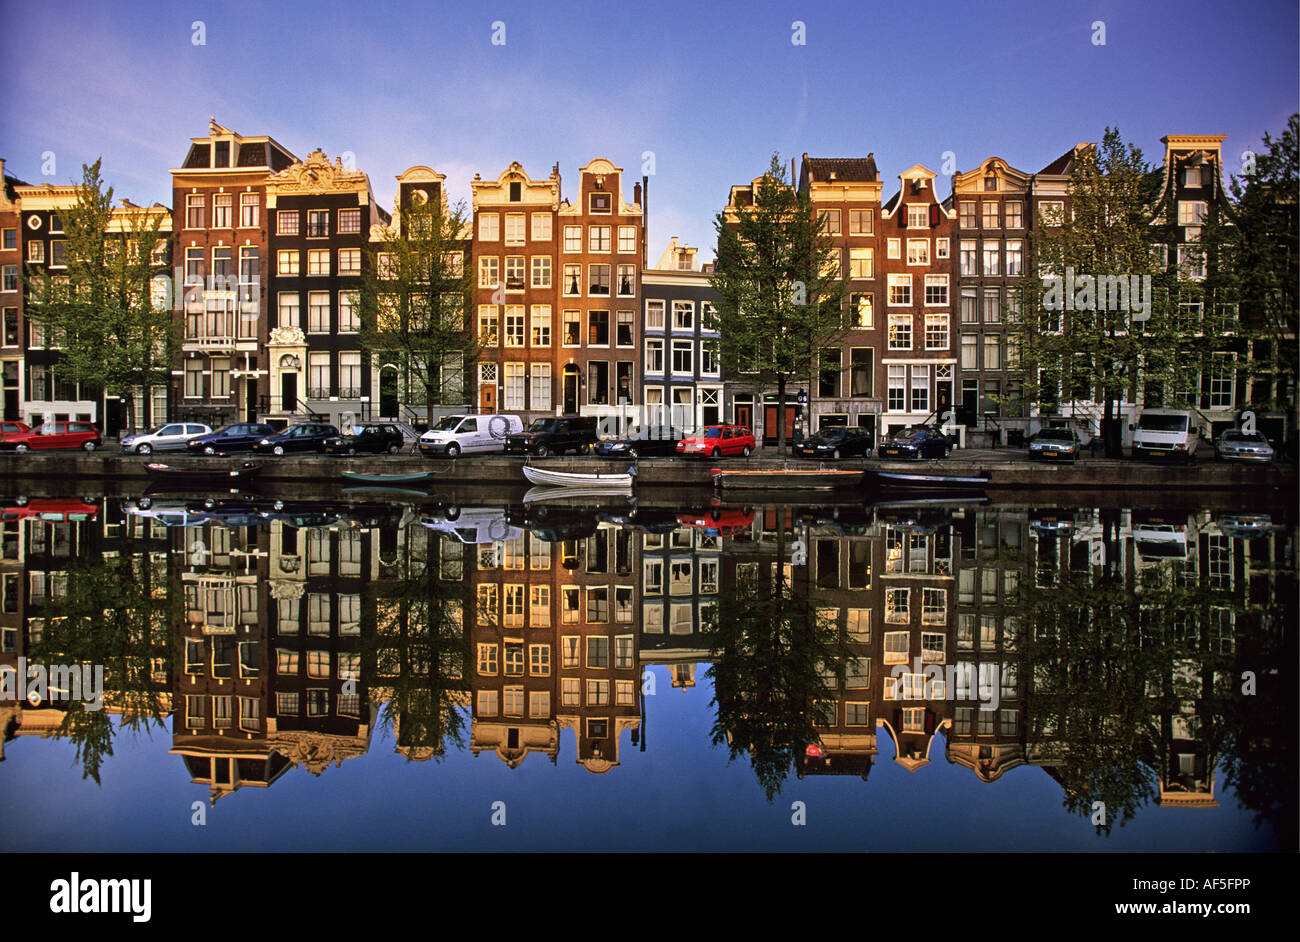 Netherlands Amsterdam Reflection of building in canal called Singel - Stock Image